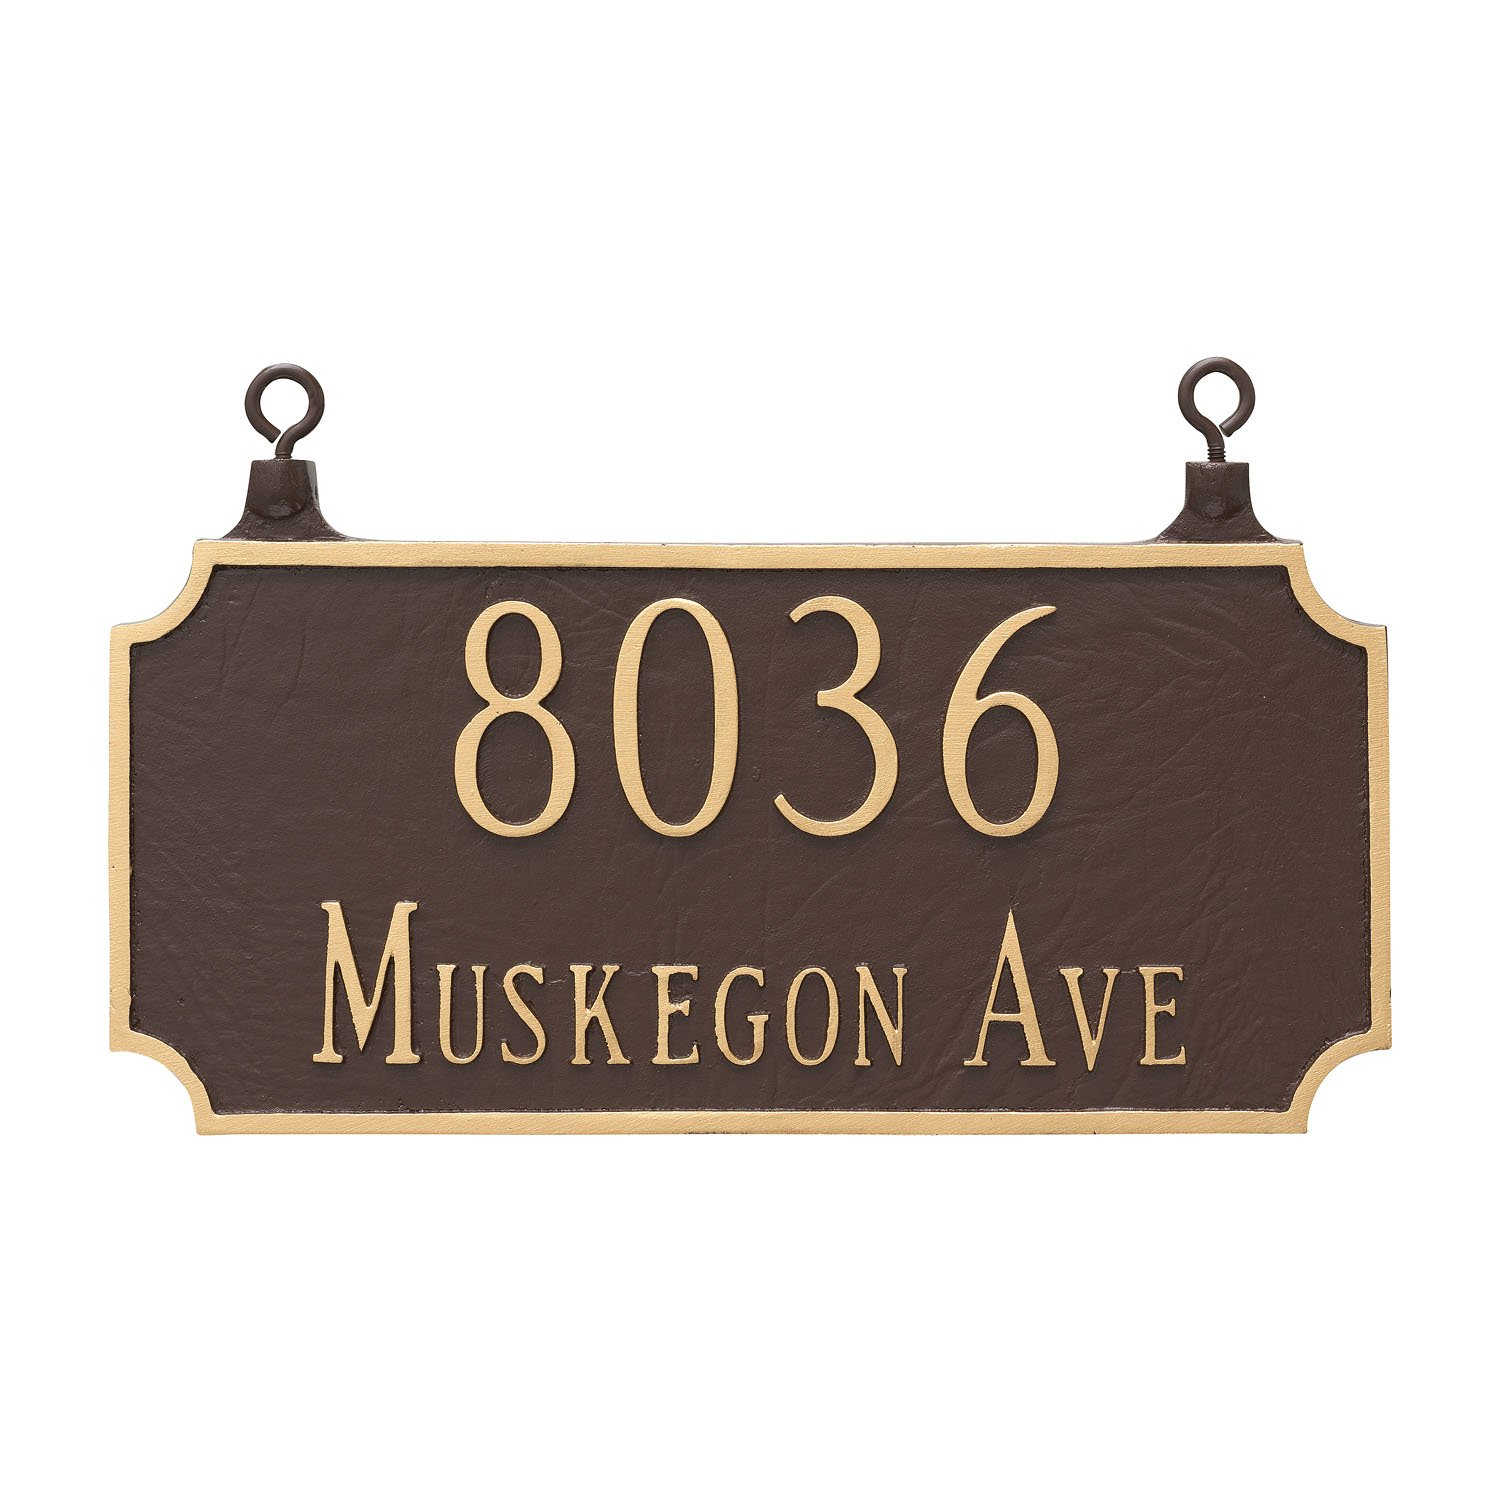 Montague Metal TSH-0005S2-H-BC Double Sided Hanging Princeton Two Line Address Sign Plaque, 7.25'' x 15.75'', Black/Copper